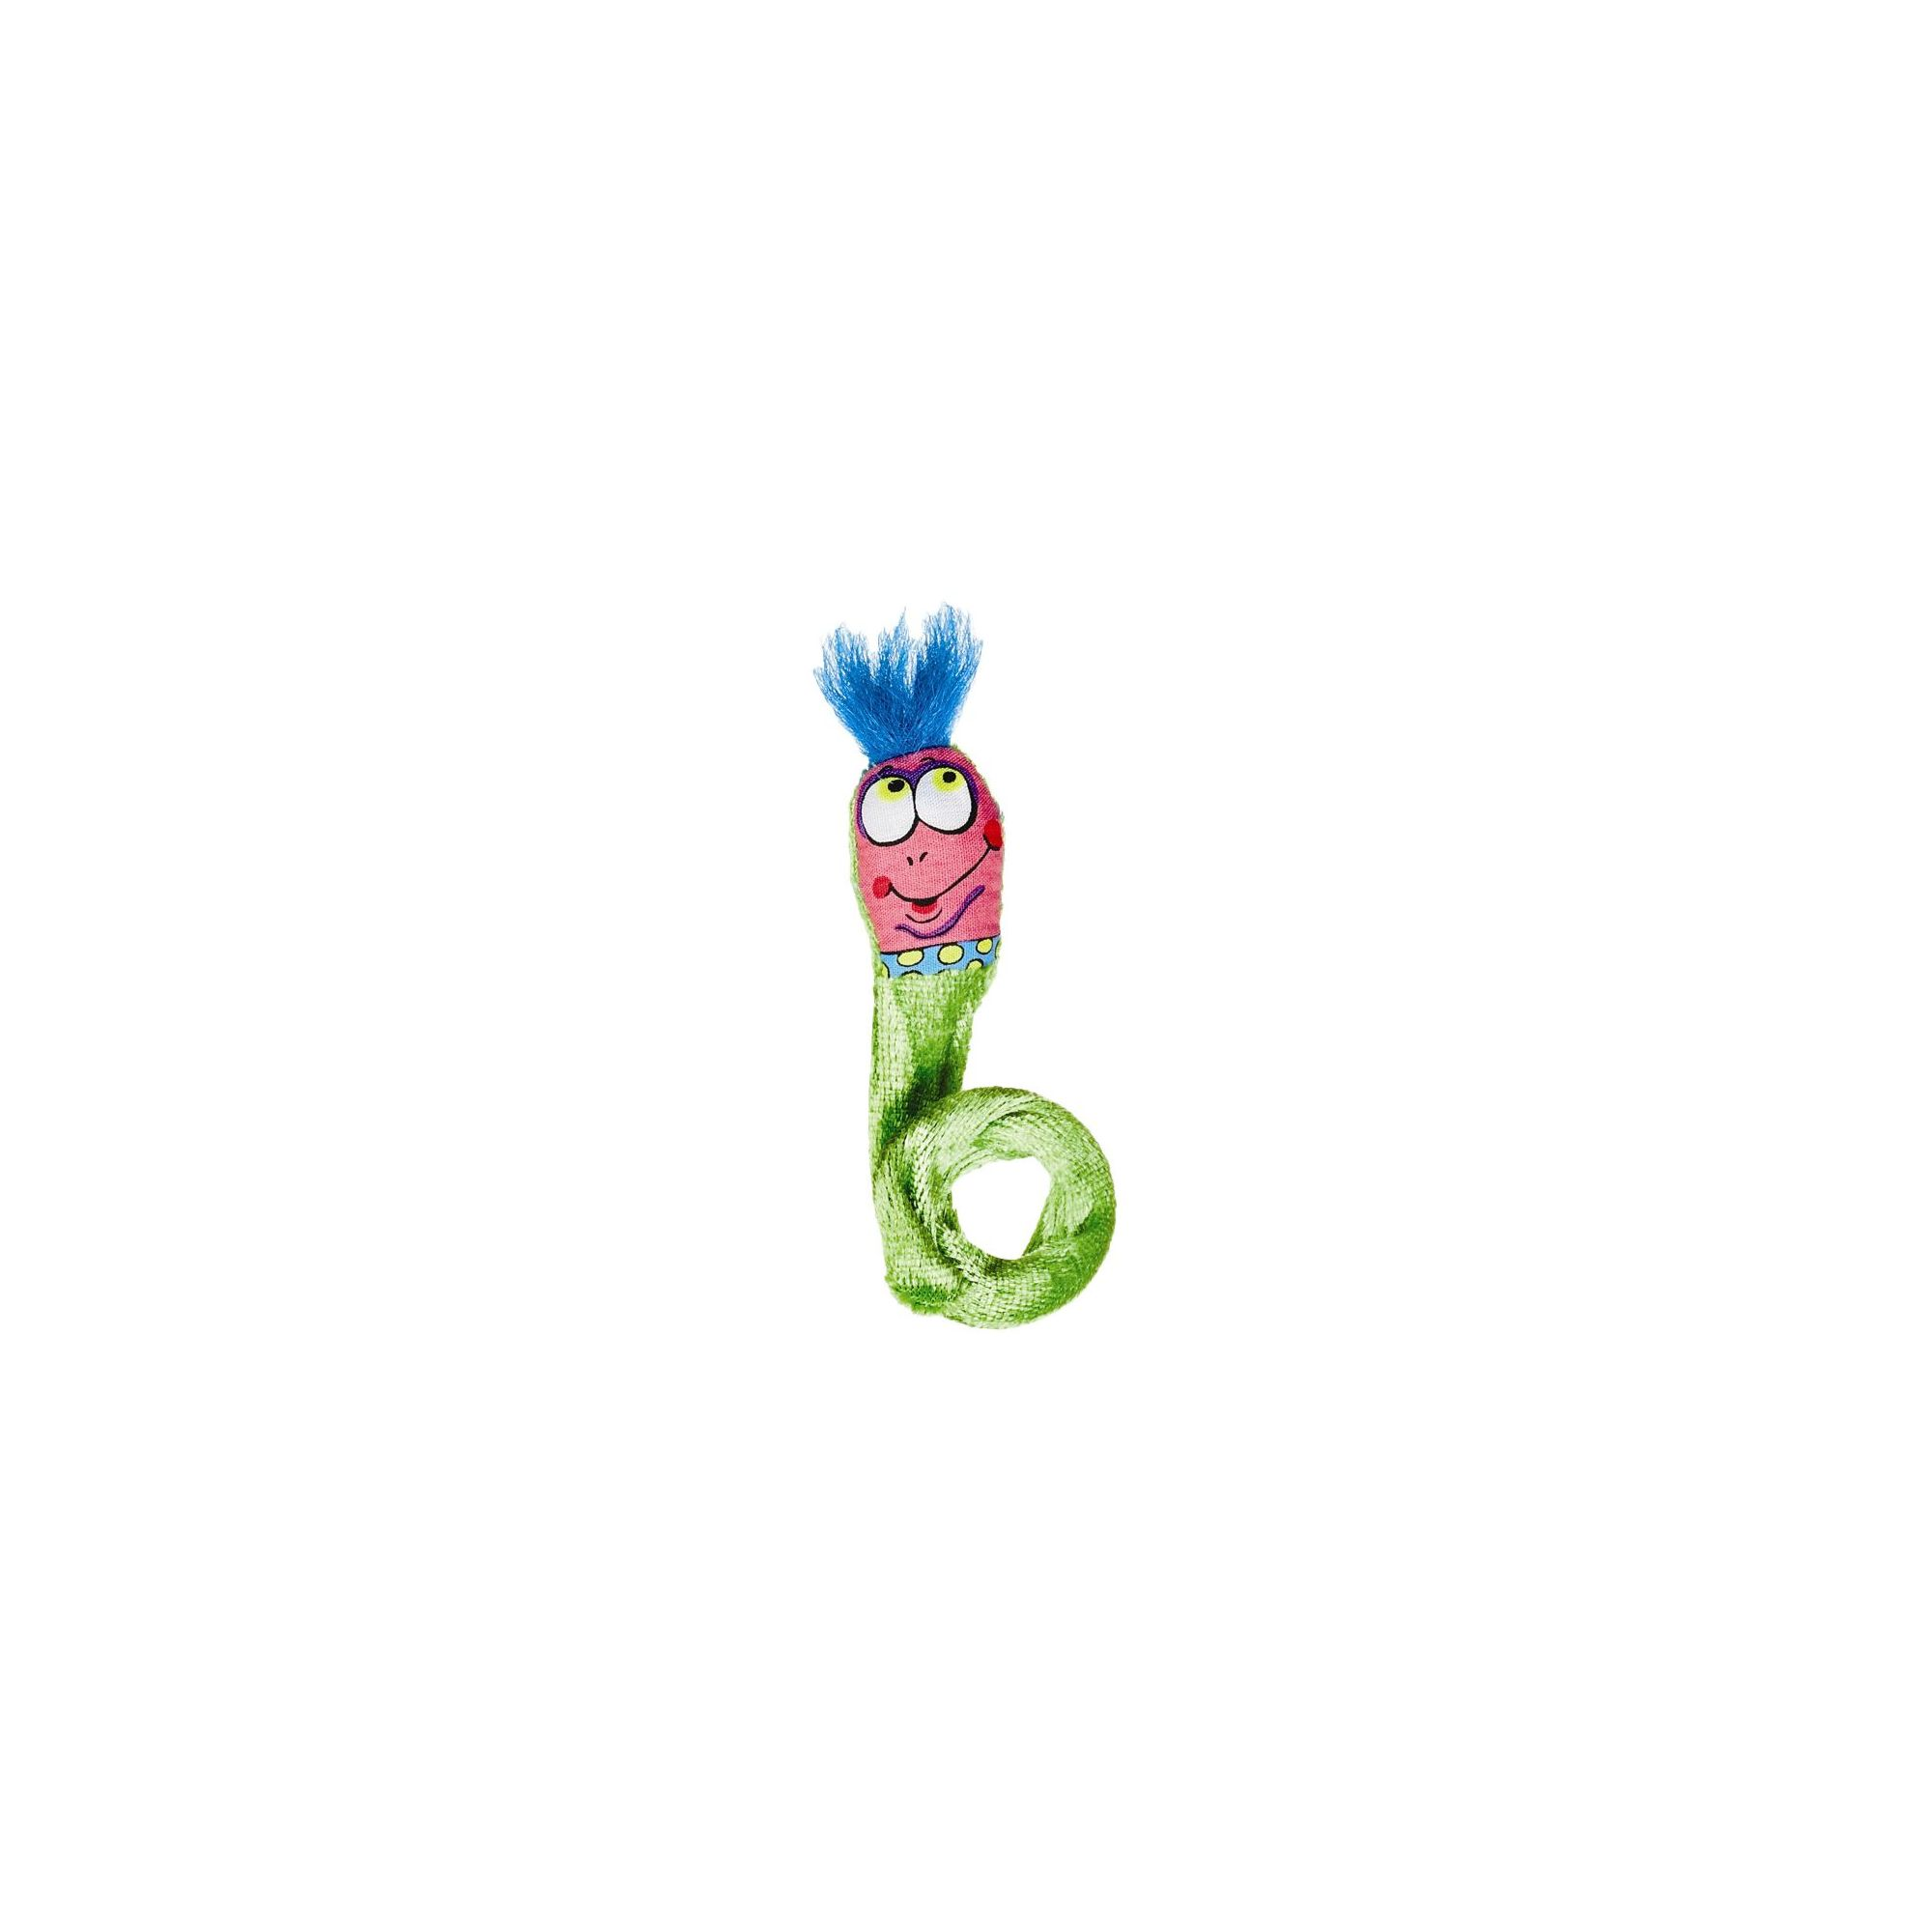 FatCat Classic Springy Worms Cat Toy in Green - 2 Pack